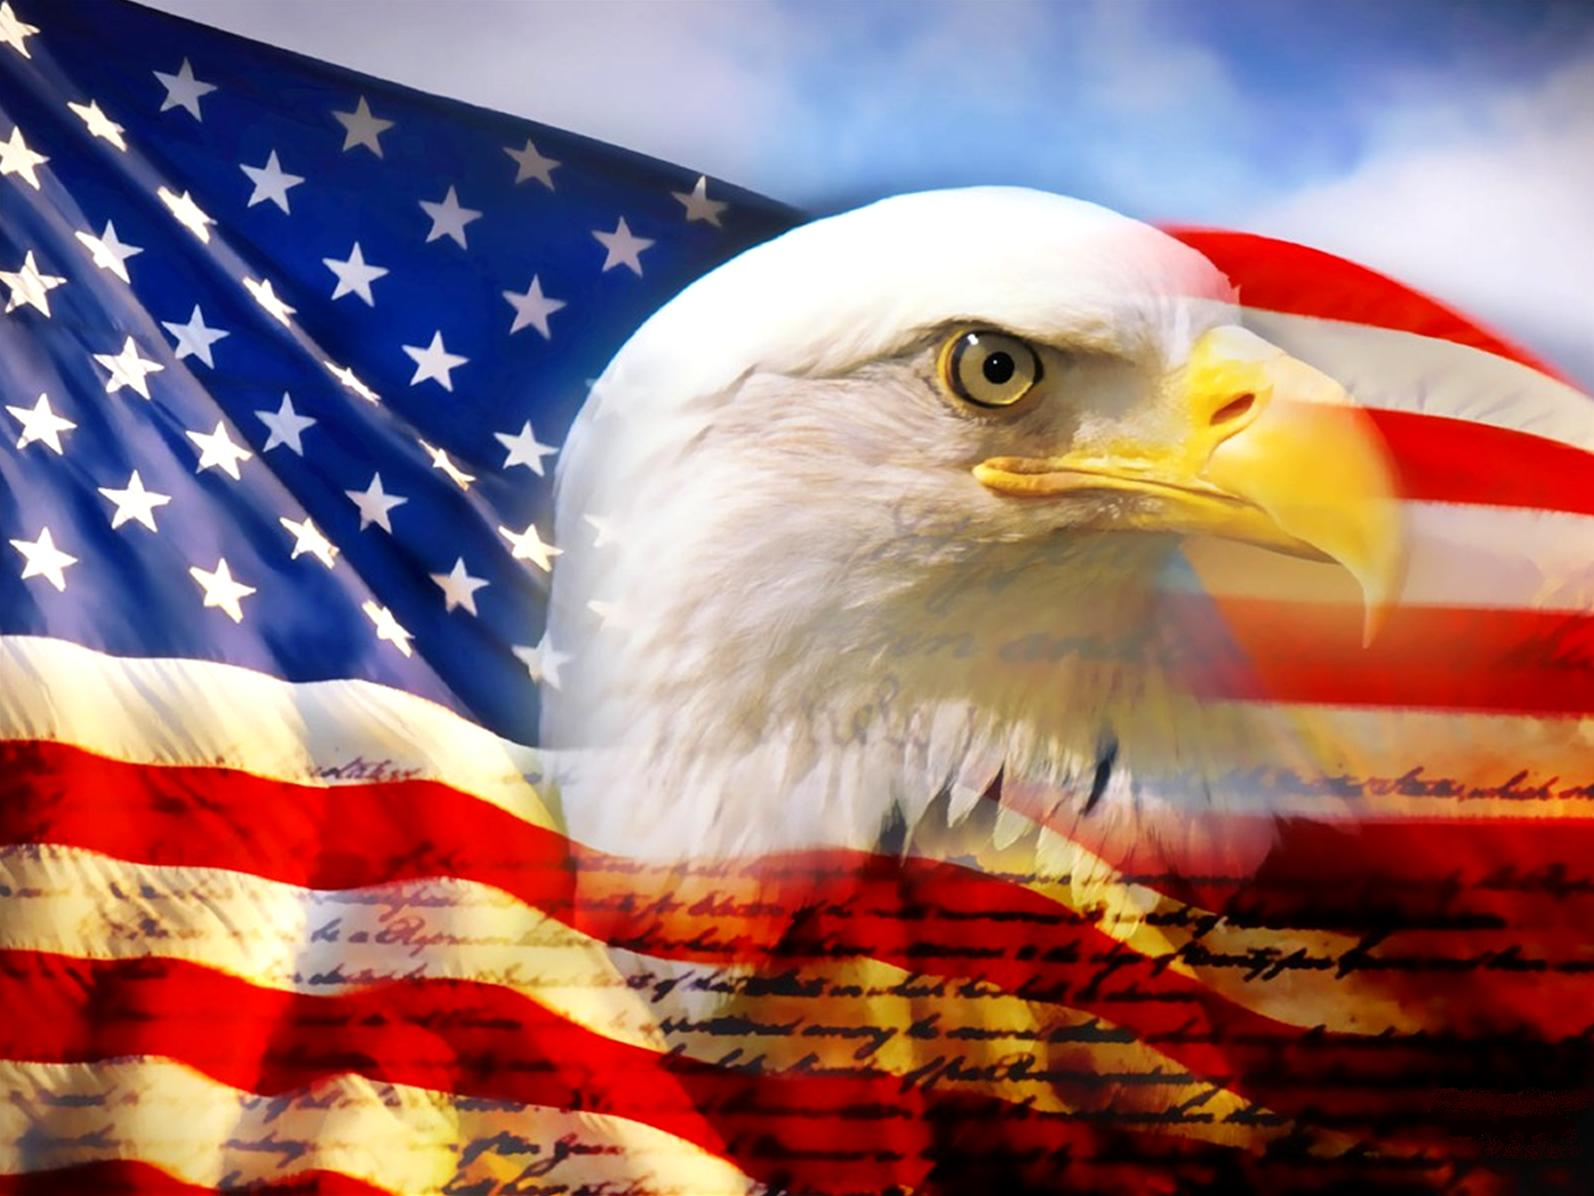 bald eagle head and american flag